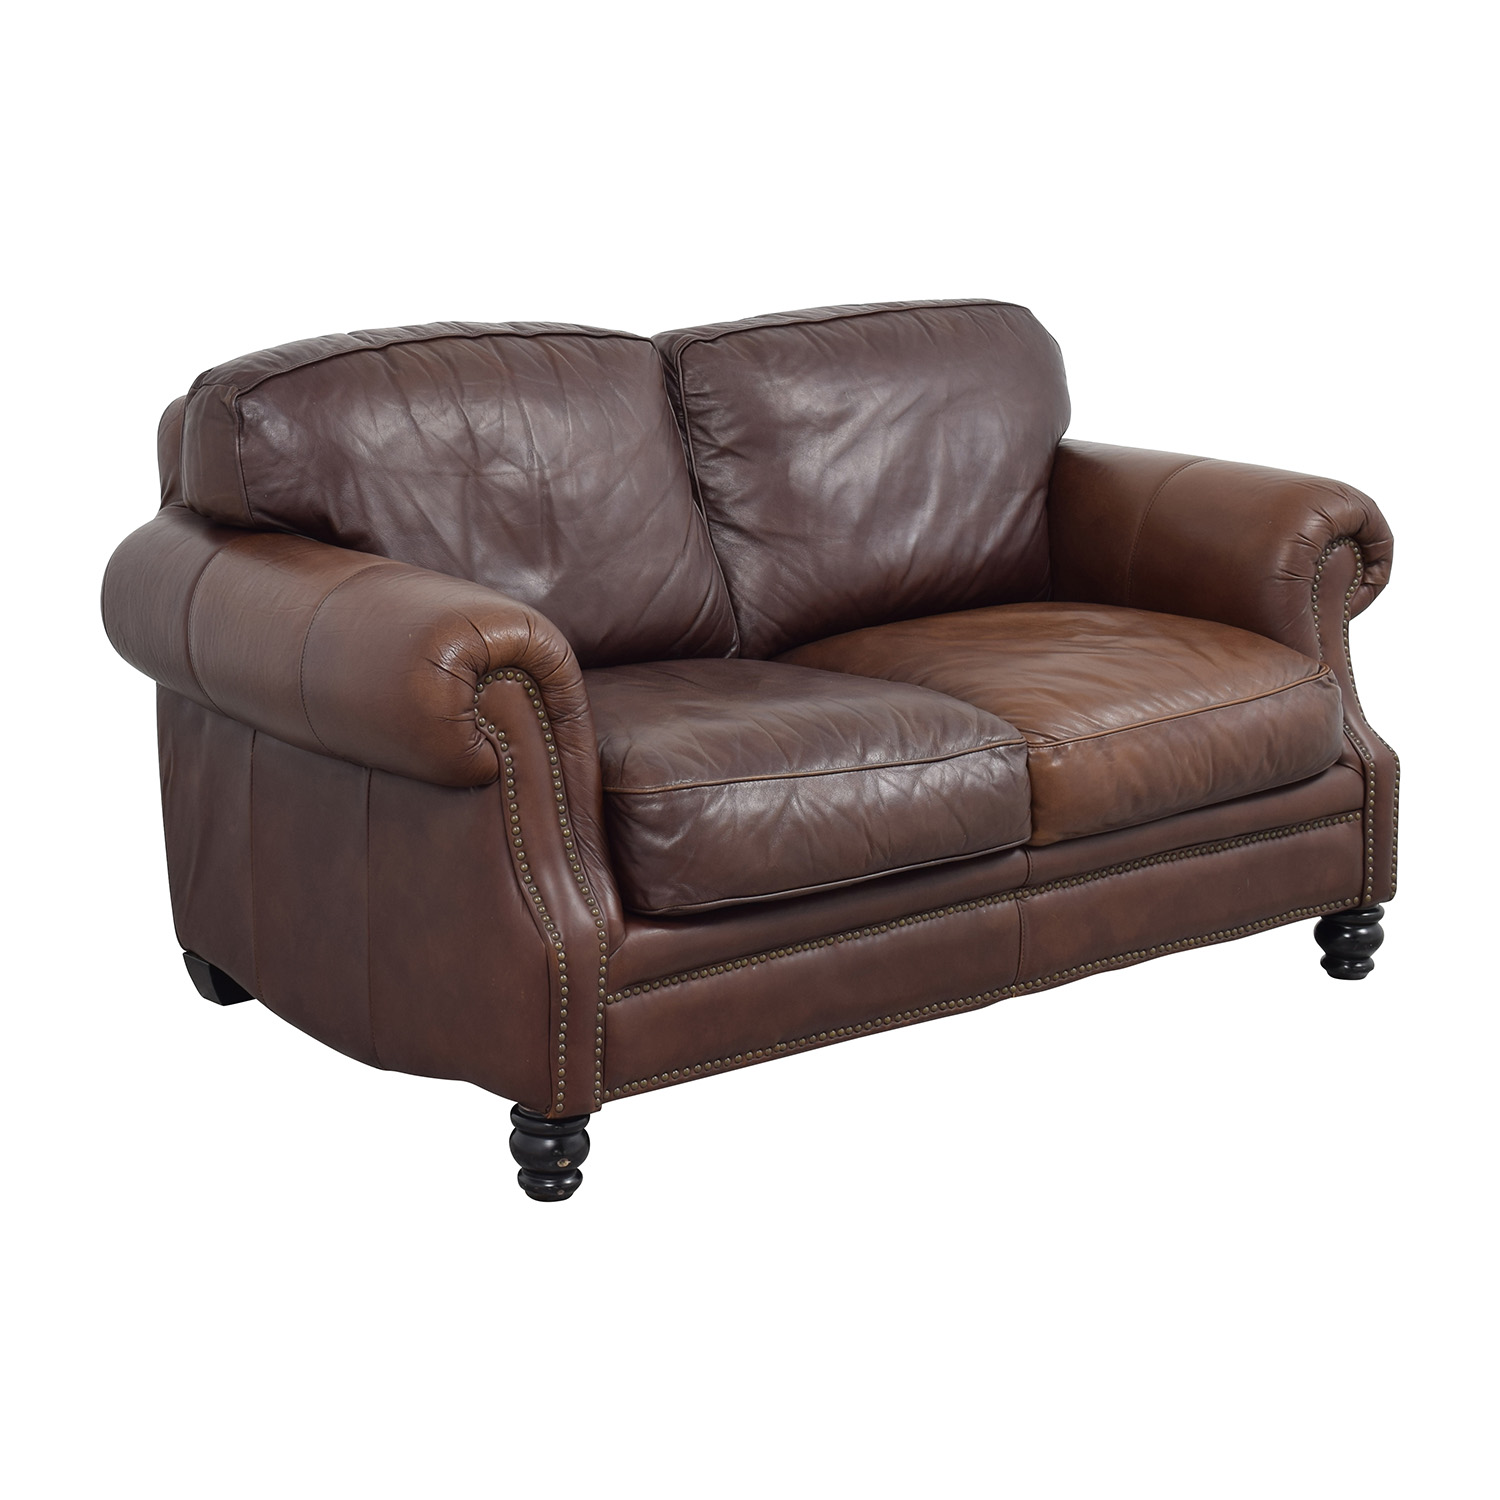 68 off brown leather studded loveseat sofas for Studded leather sofa